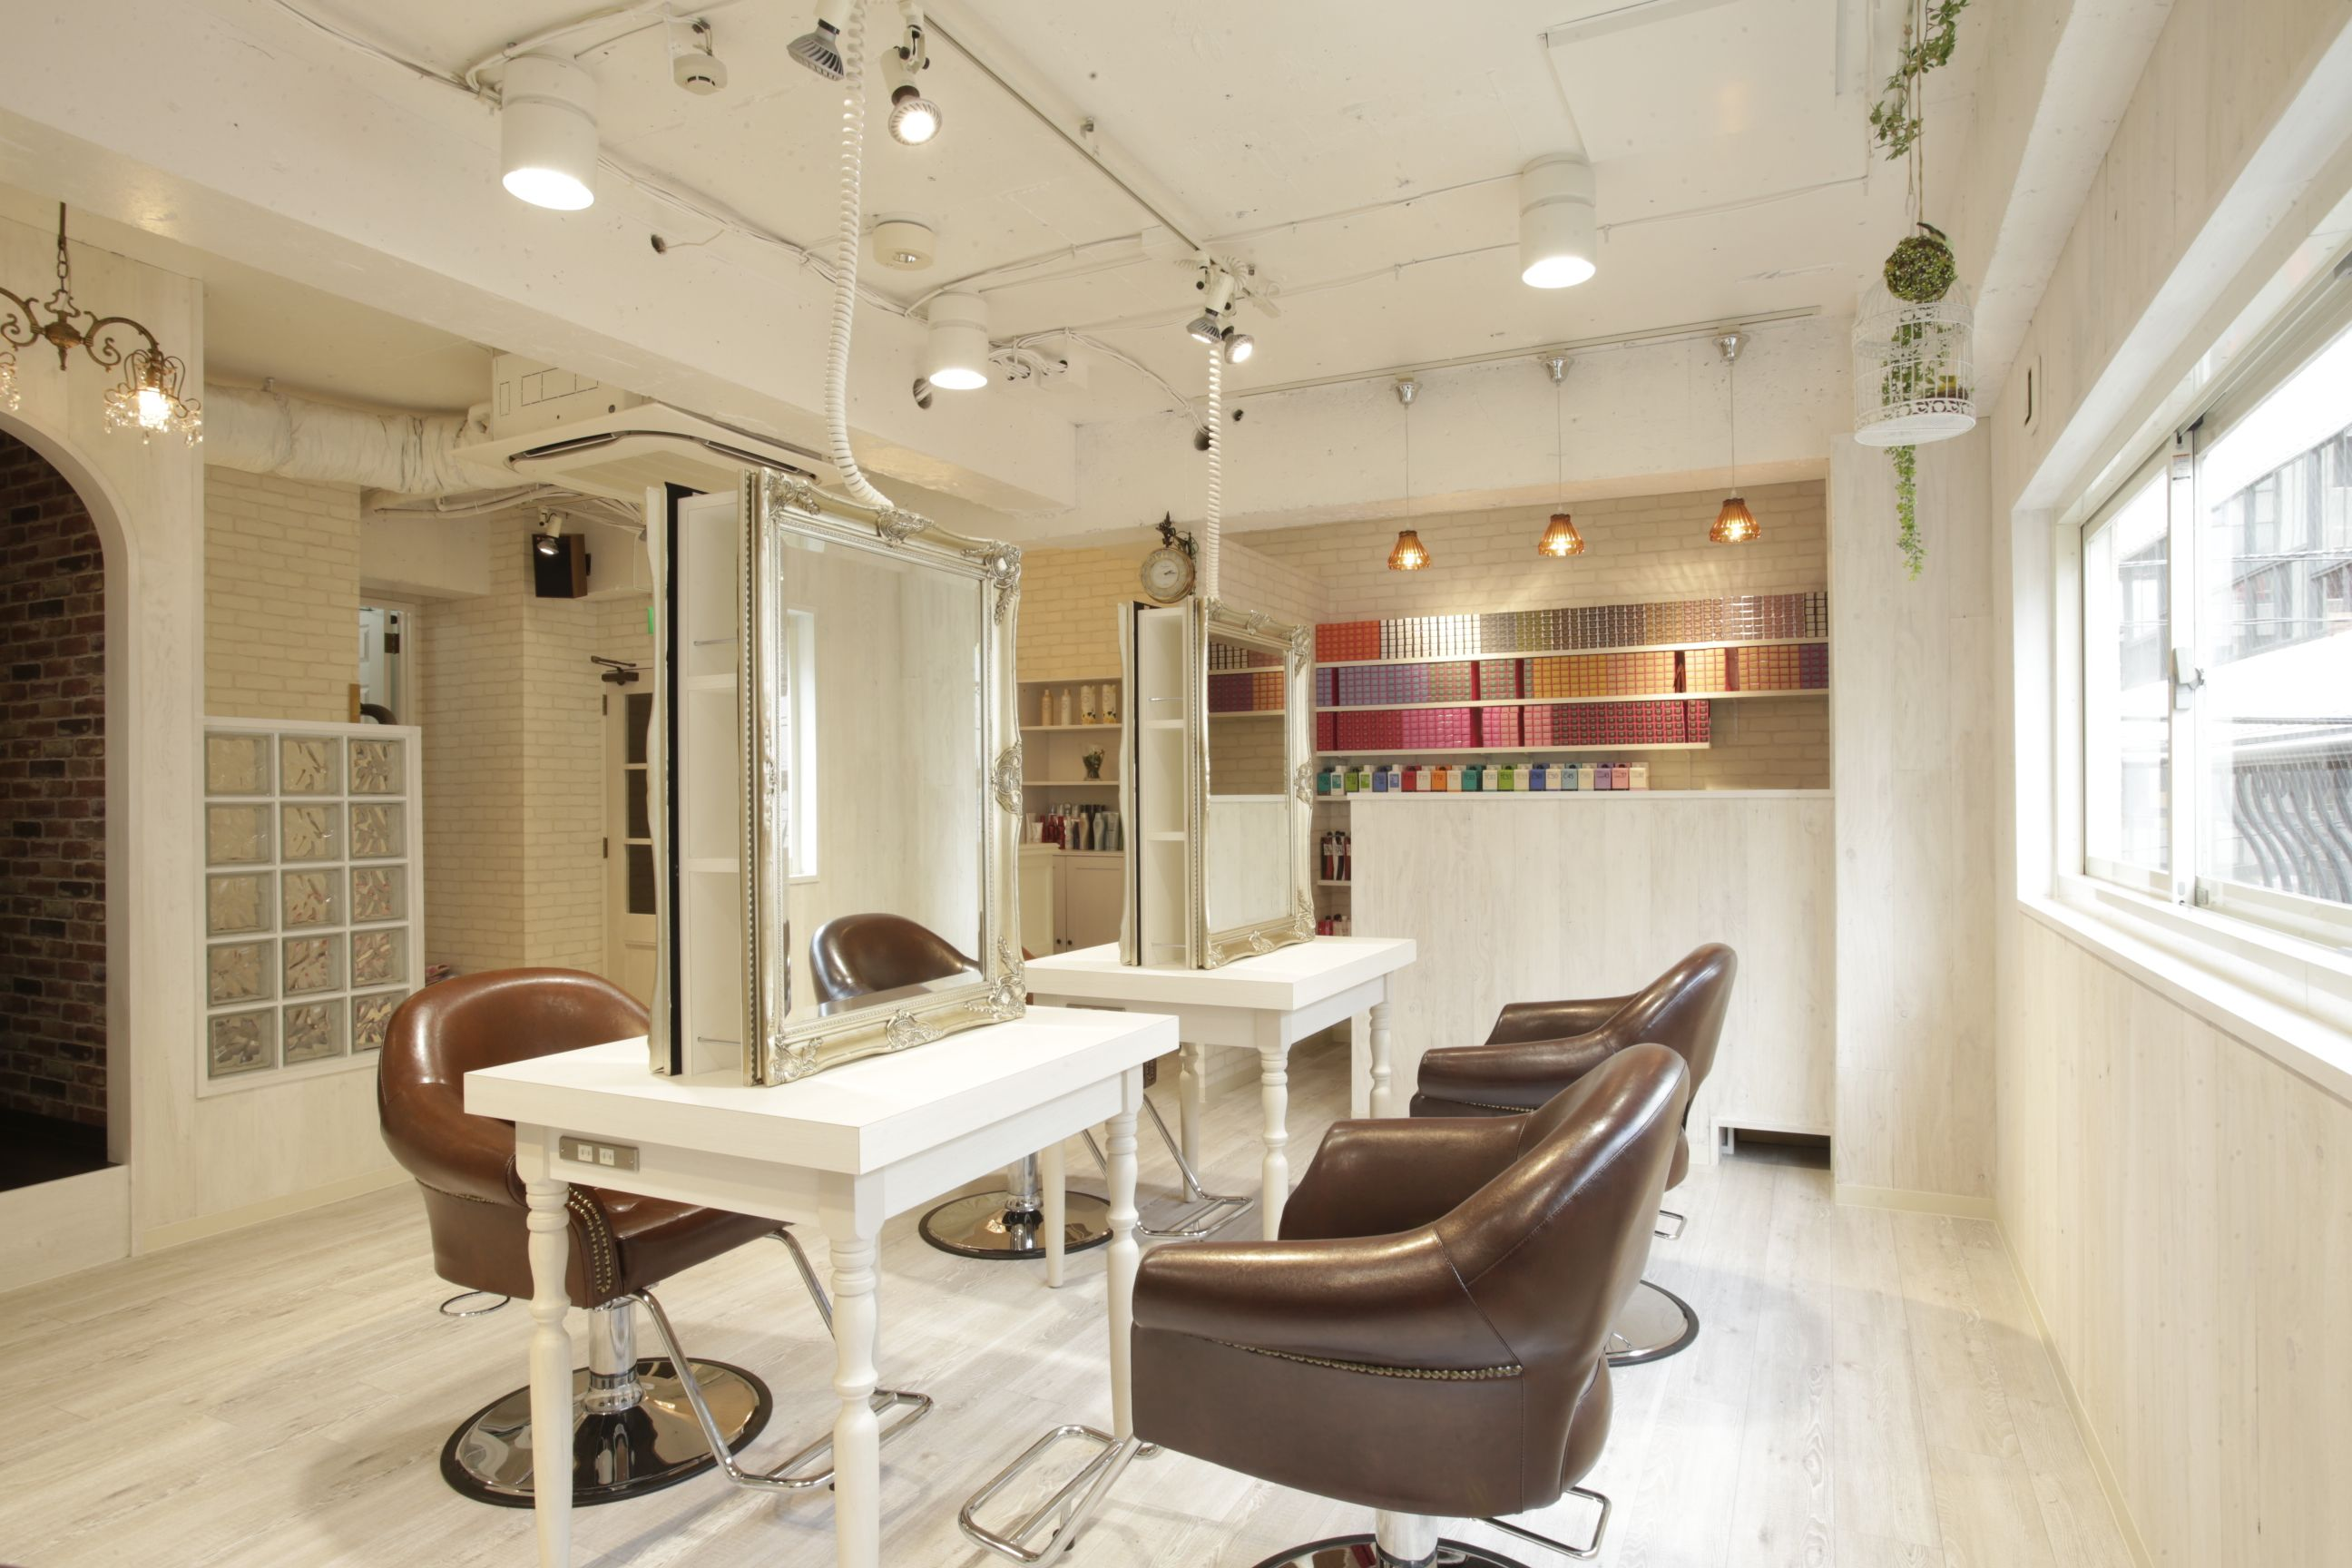 beauty salon interior design ideas hair space decor japan antique - Beauty Salon Interior Design Ideas